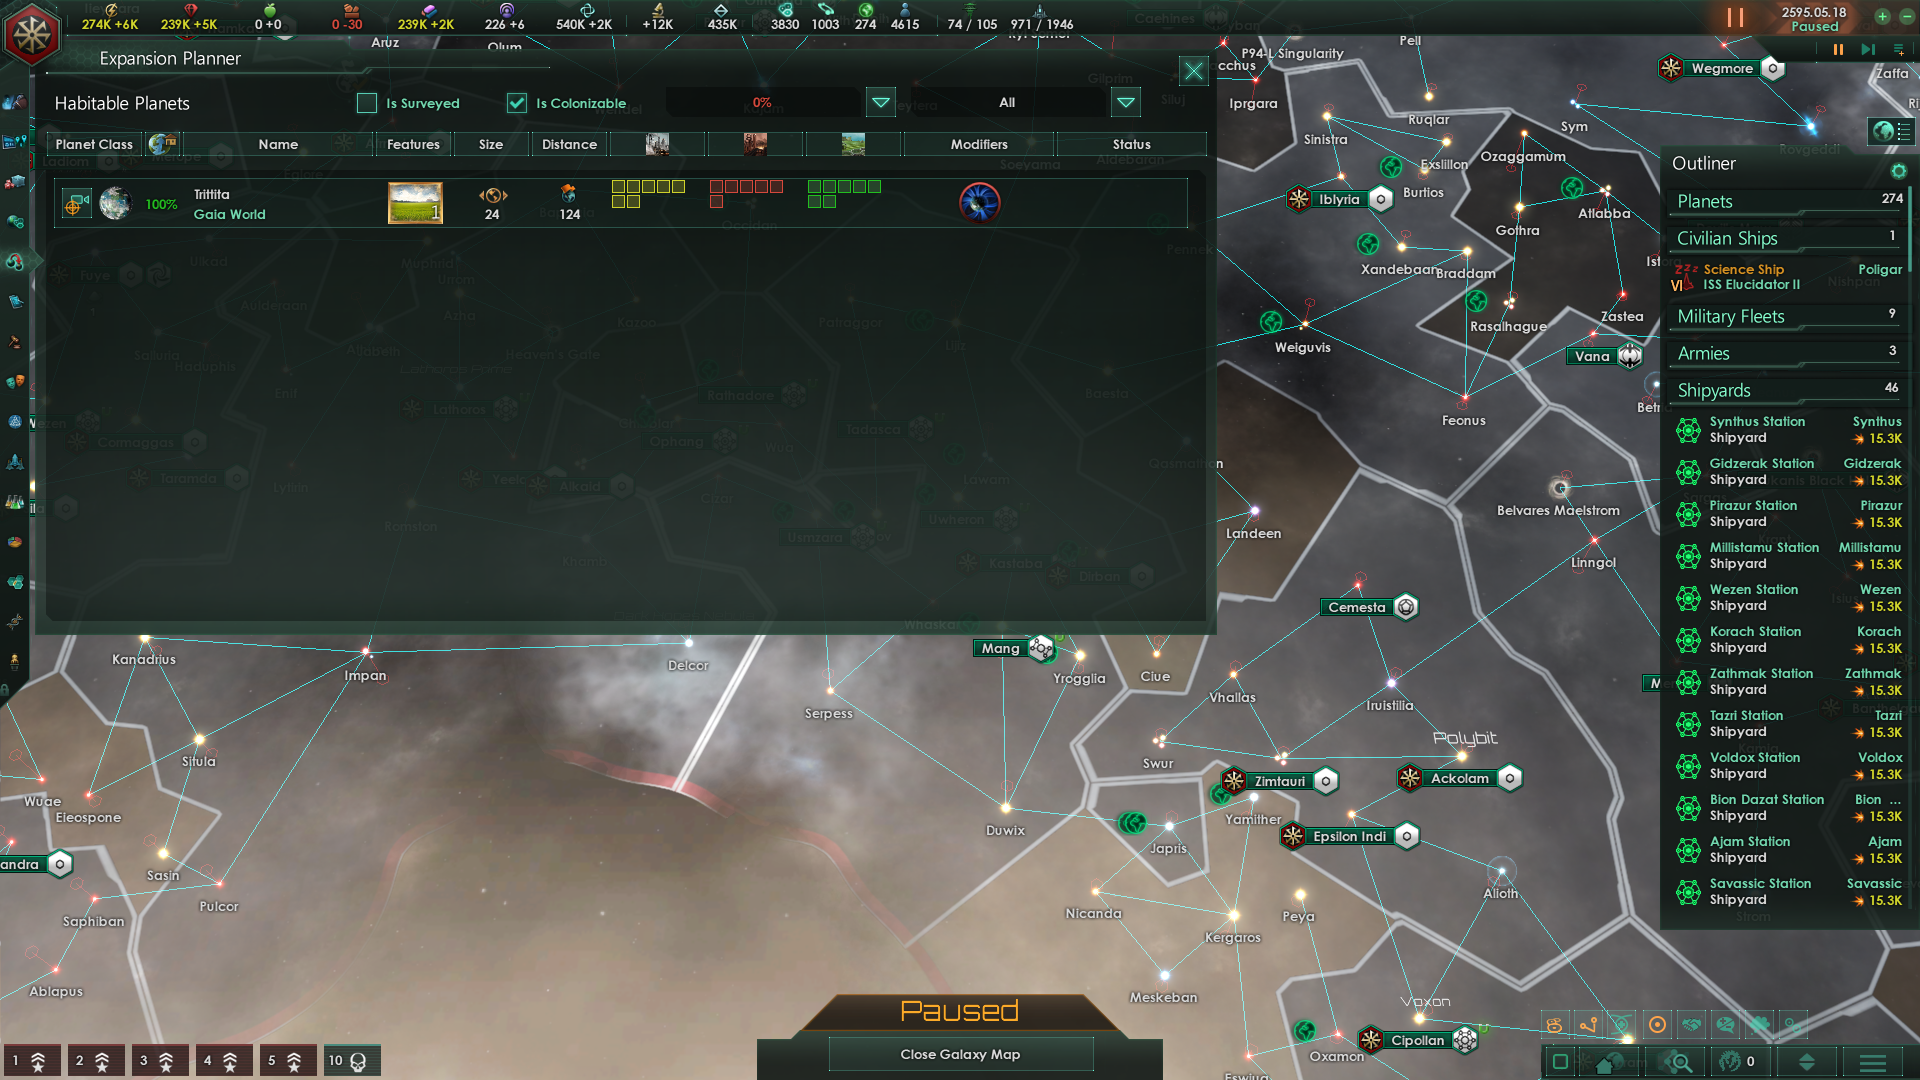 Expansion Planner doesn't show all Planets | Paradox